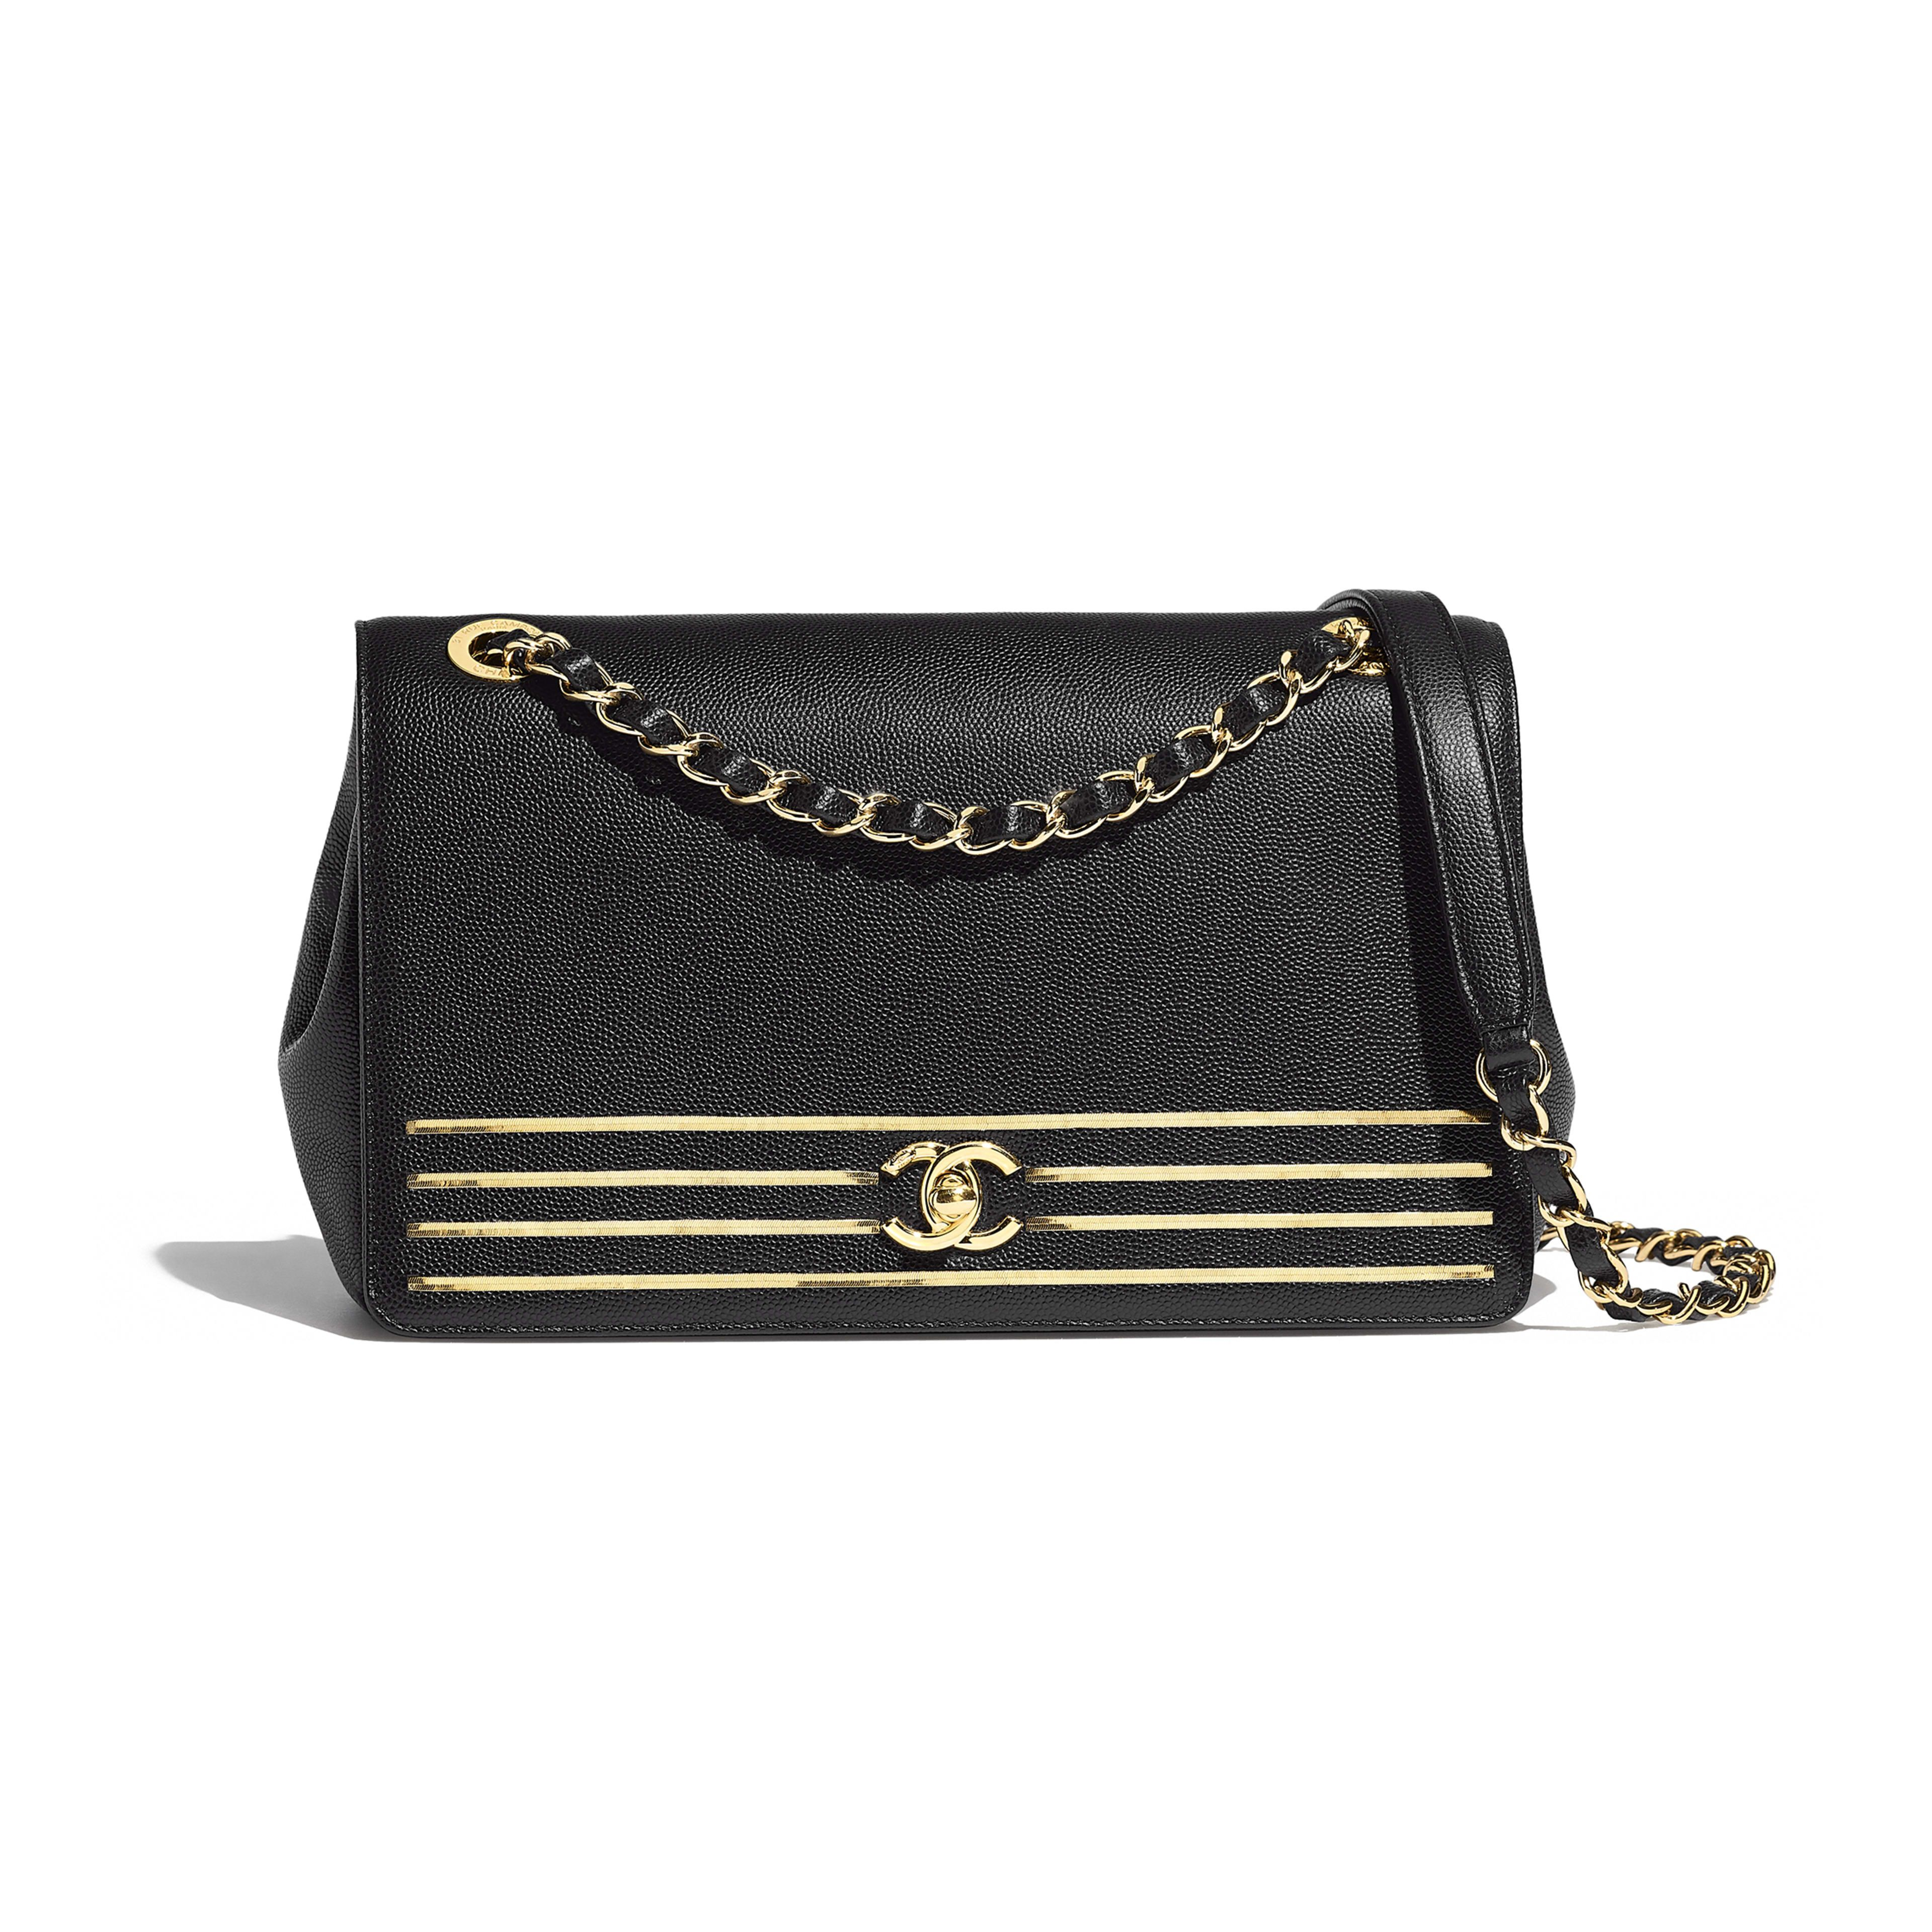 69d1fecf6c Flap Bag - Black - Embroidered Grained Calfskin   Gold-Tone Metal - Default  view - see full sized version